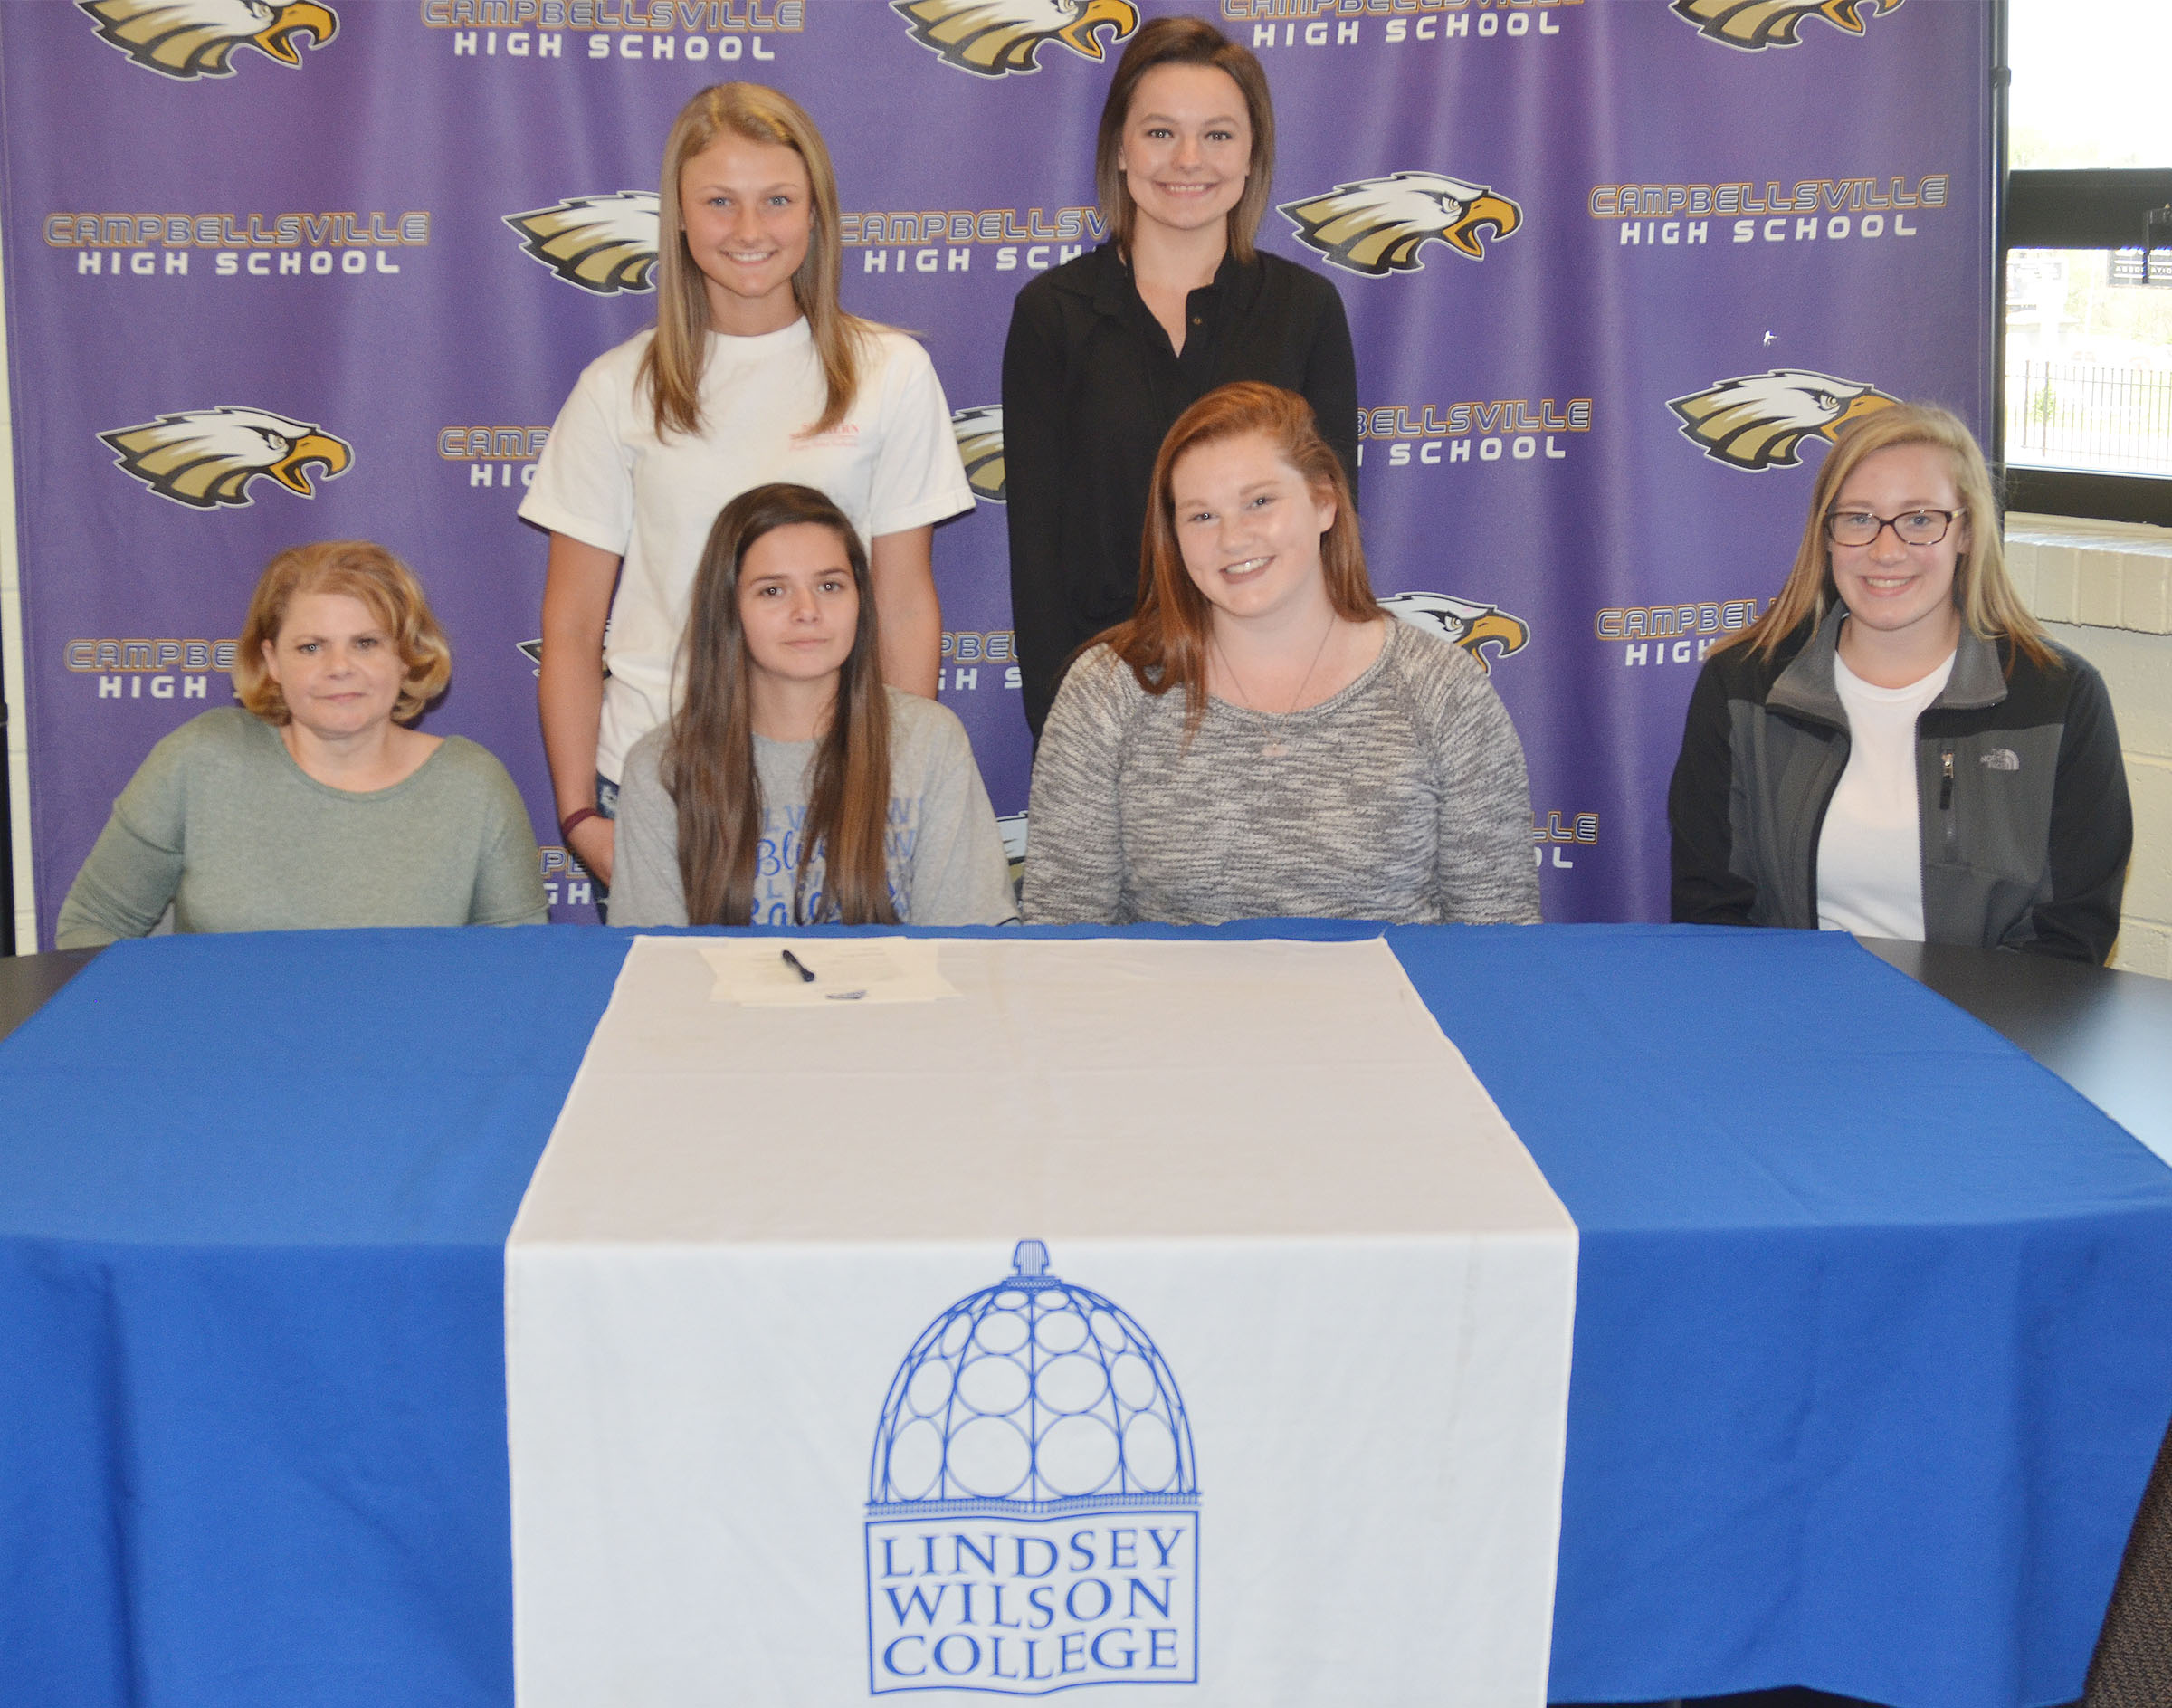 Campbellsville High School senior Shauna Jones will continue her academic and tennis career at Lindsey Wilson College this fall. Pictured with her are, from left, front, her mother Dana Pearl, Shauna, fellow senior tennis player Mallory Haley and freshman player Samantha Johnson. Back, freshman player Victoria Cox and fellow senior Kyrsten Hill.